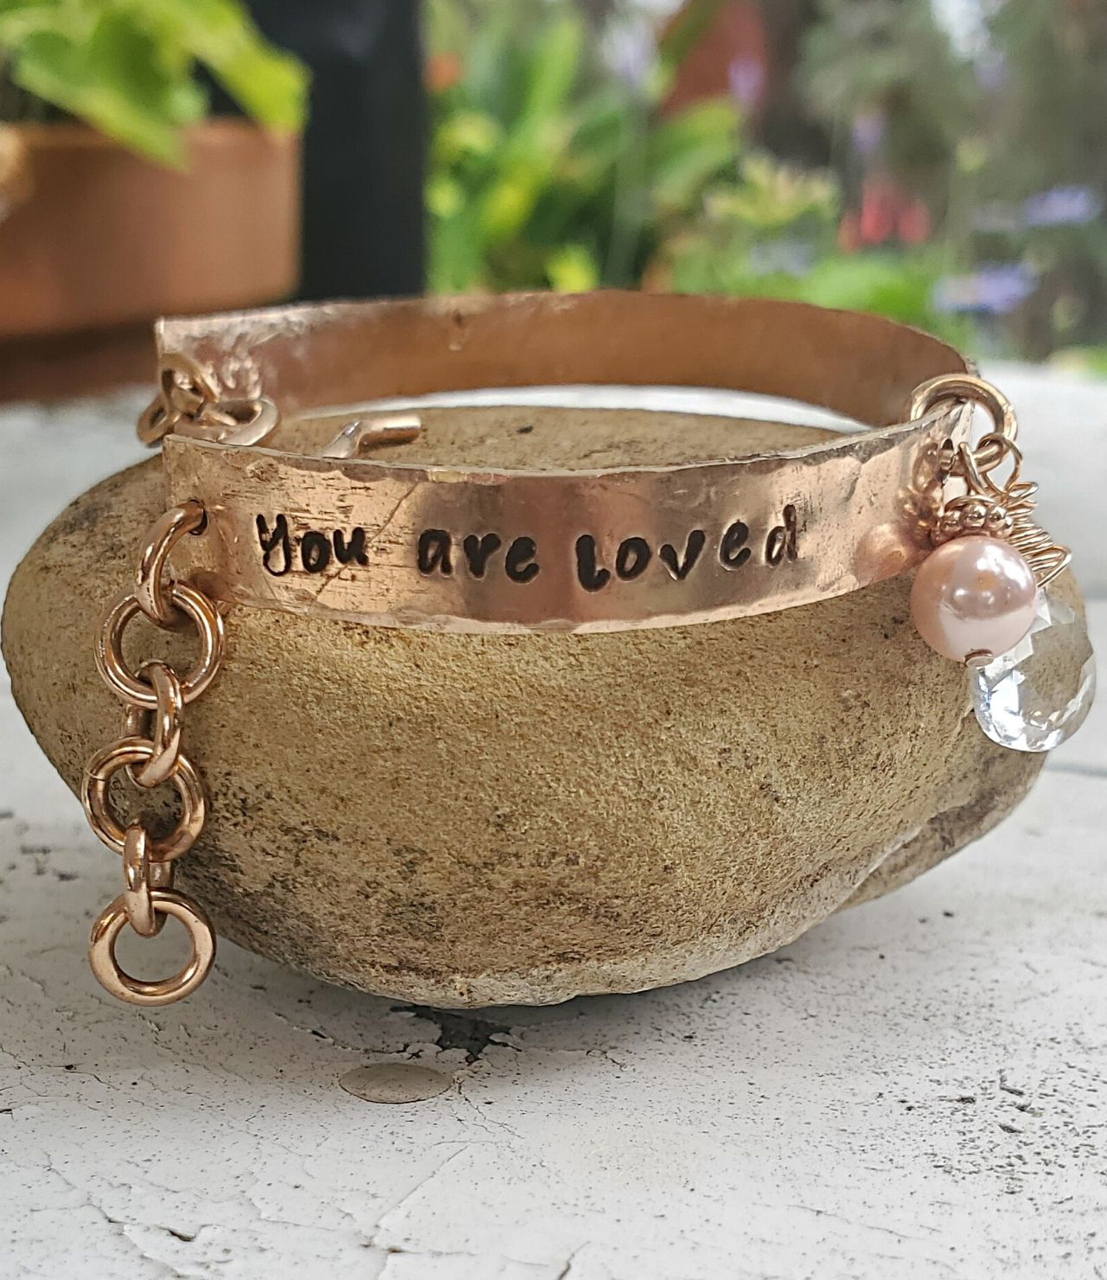 You are Loved bronze pearl crystal bracelet on rock in garden